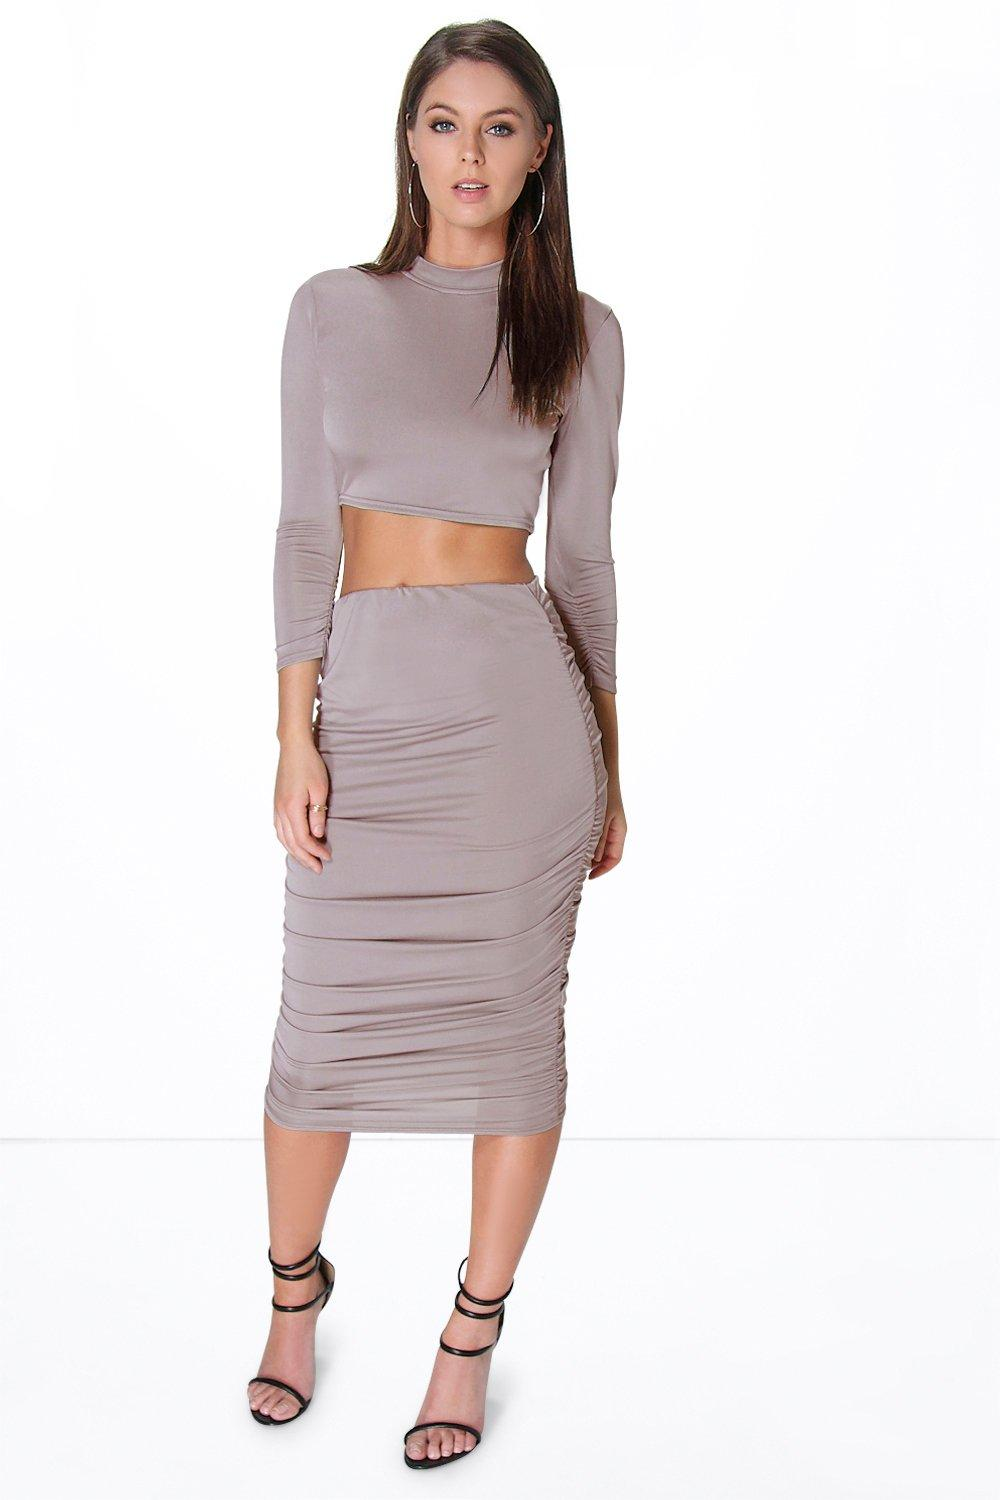 milli rouched sleeve midi skirt co ord set boohoo